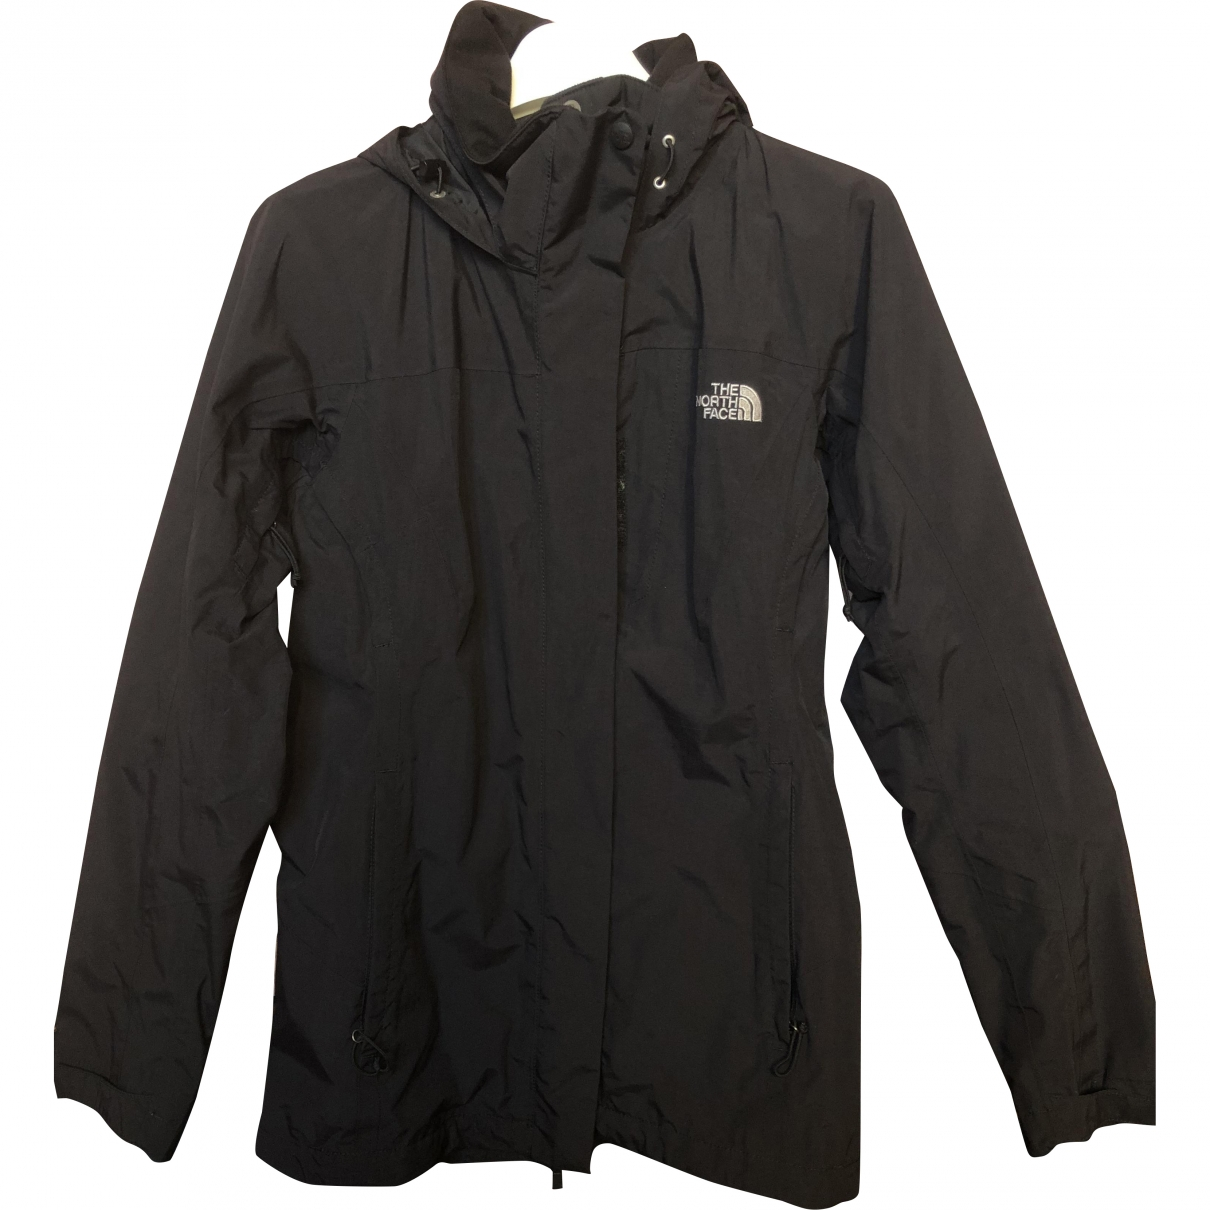 The North Face \N Black jacket for Women XS International